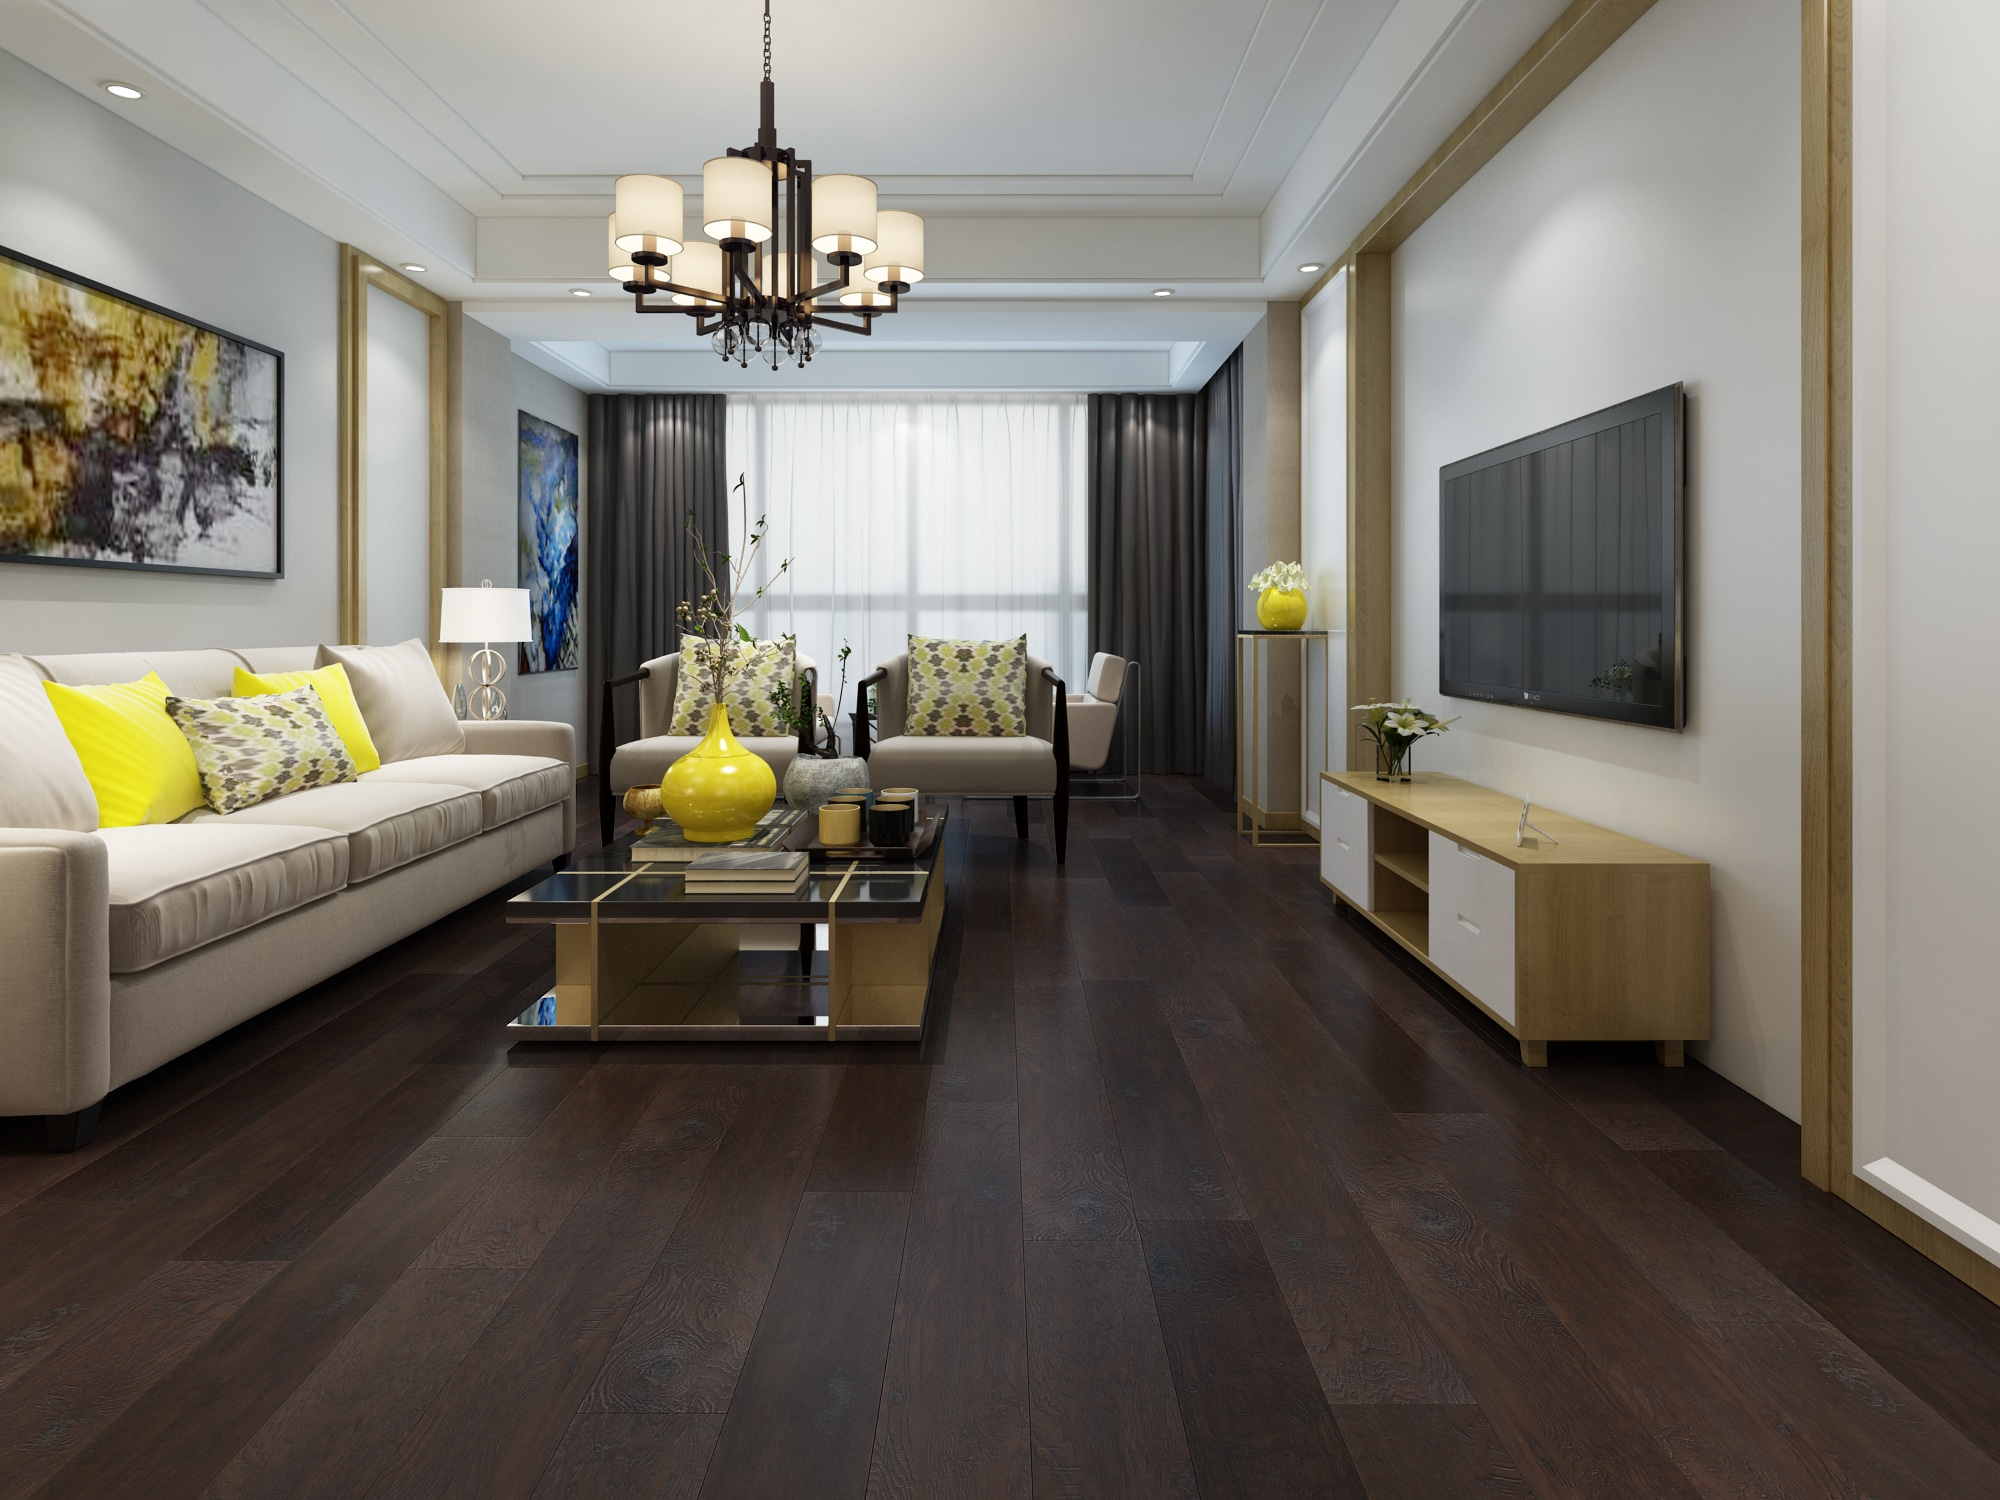 Parkay Lvt Laguna Shadow Reef Waterproof Floor 4 2mm